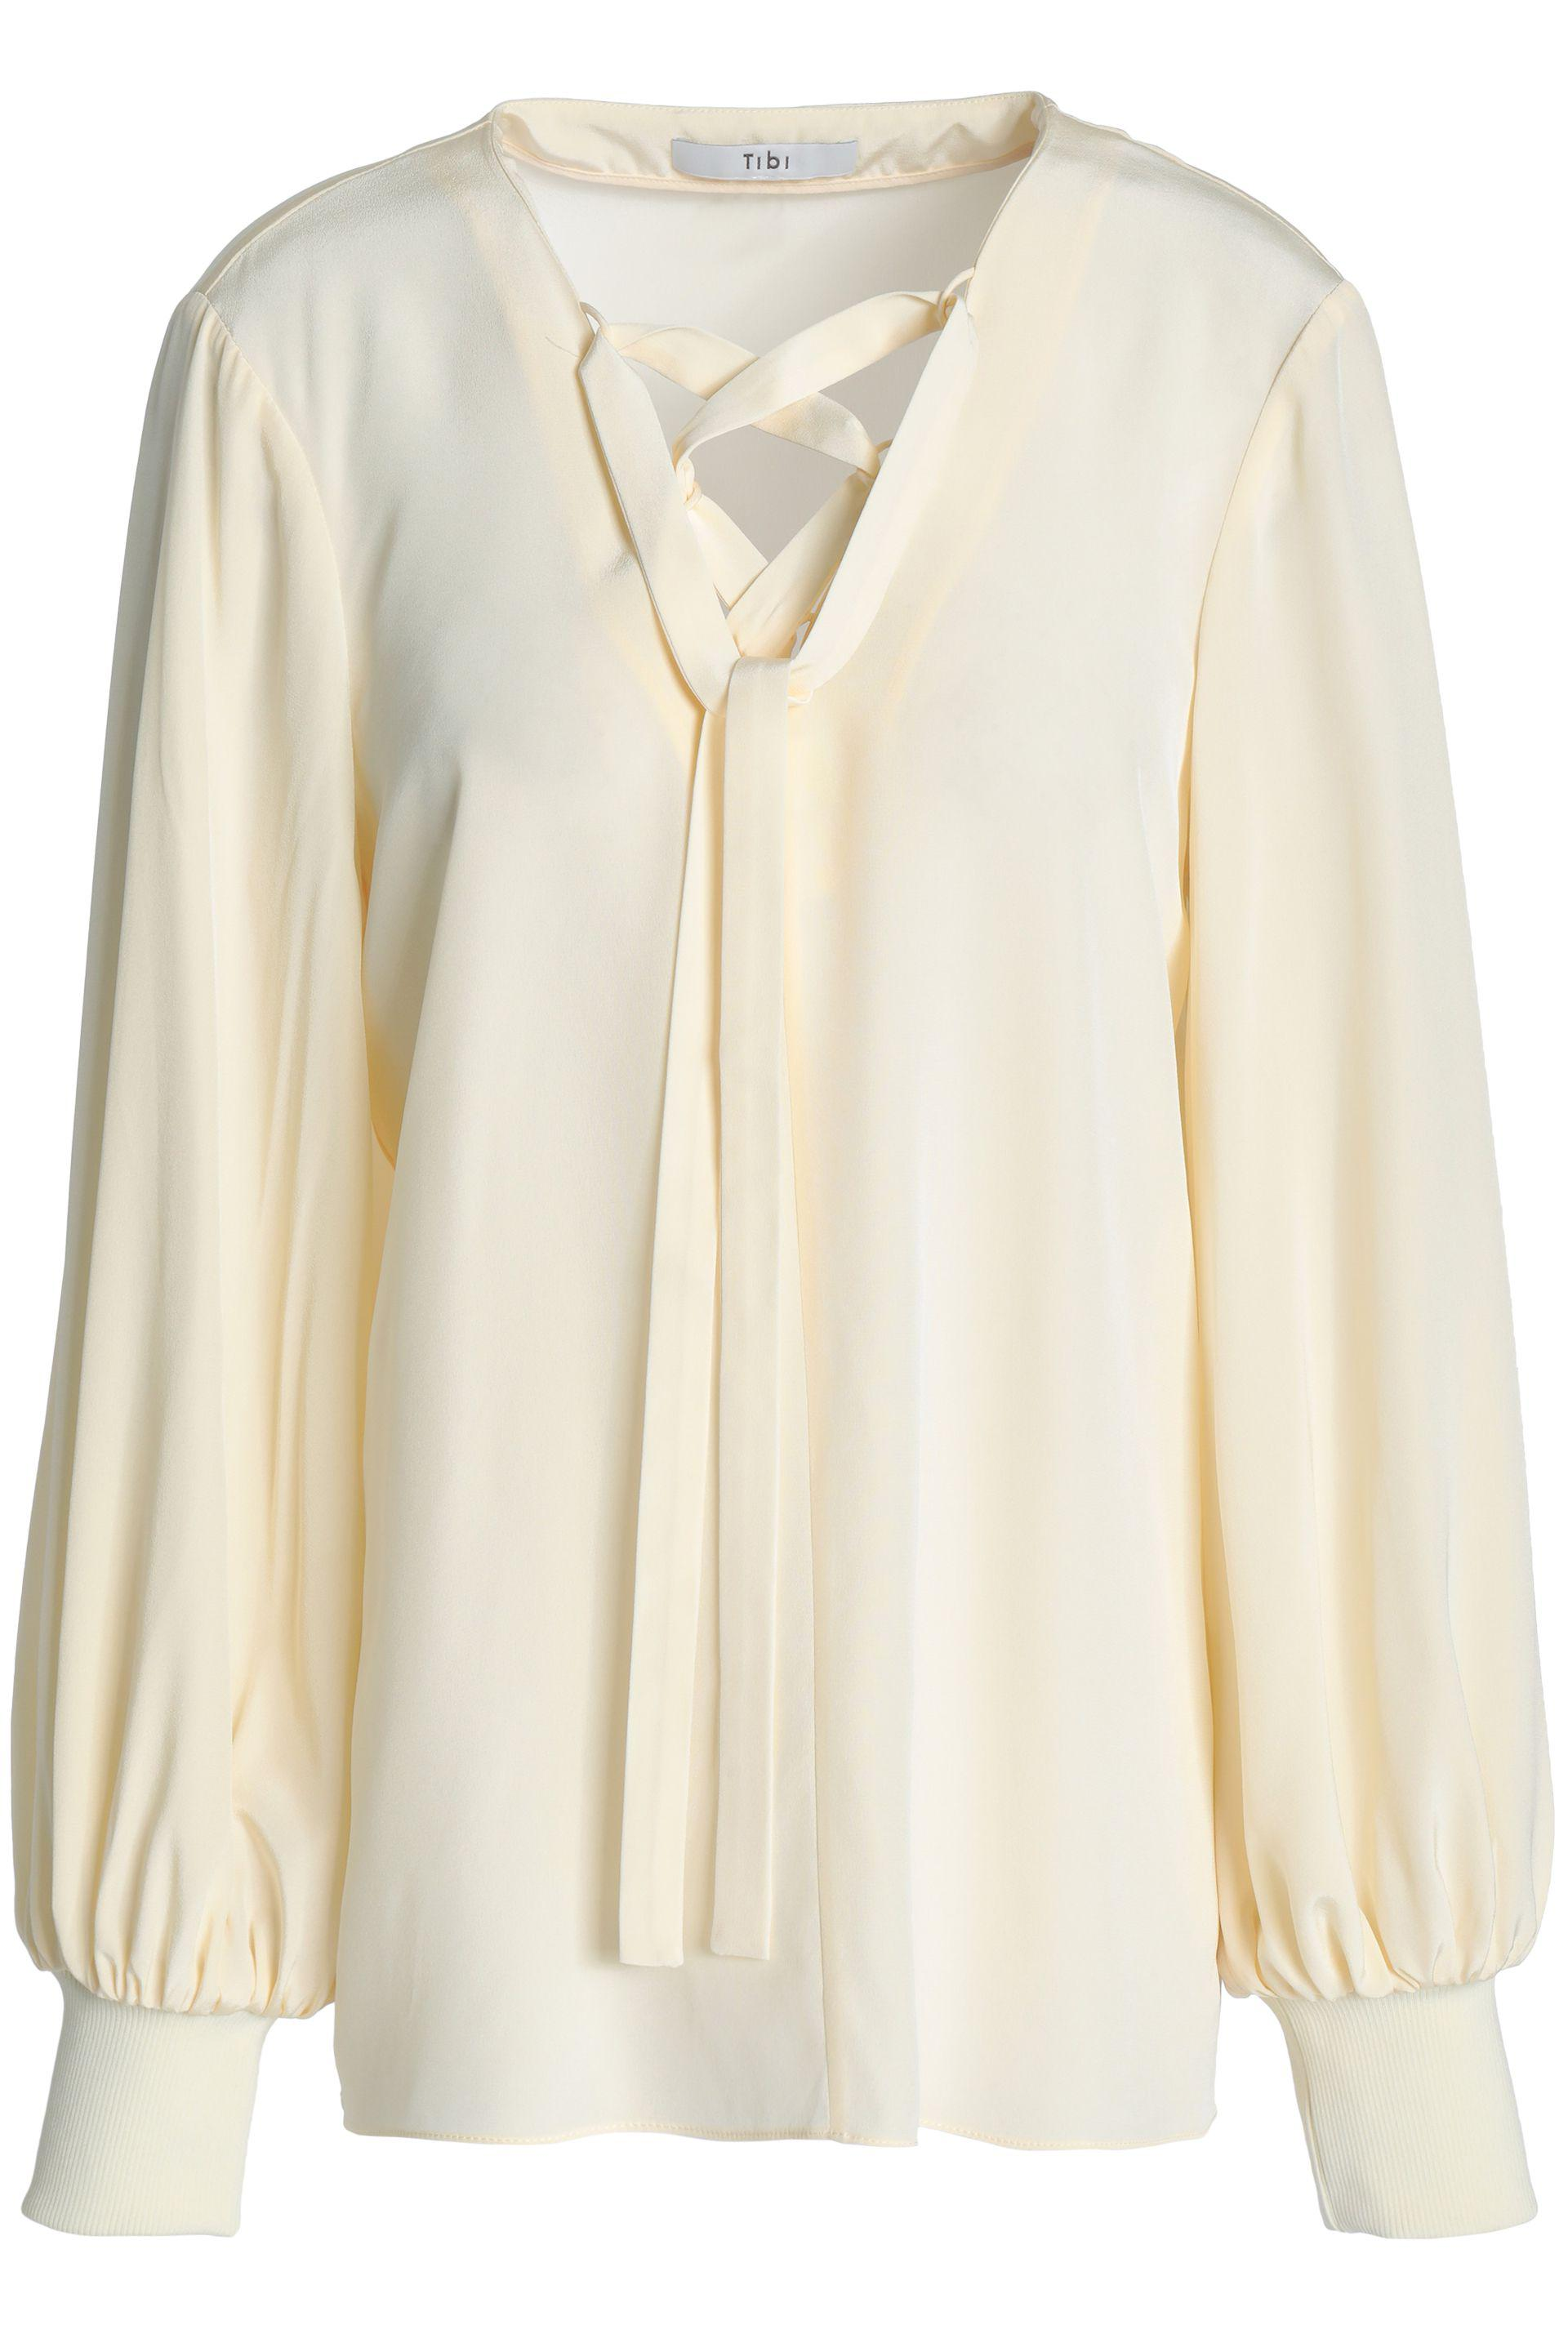 aa1596437740 Lyst - Tibi Lace-up Silk Crepe De Chine Blouse in White